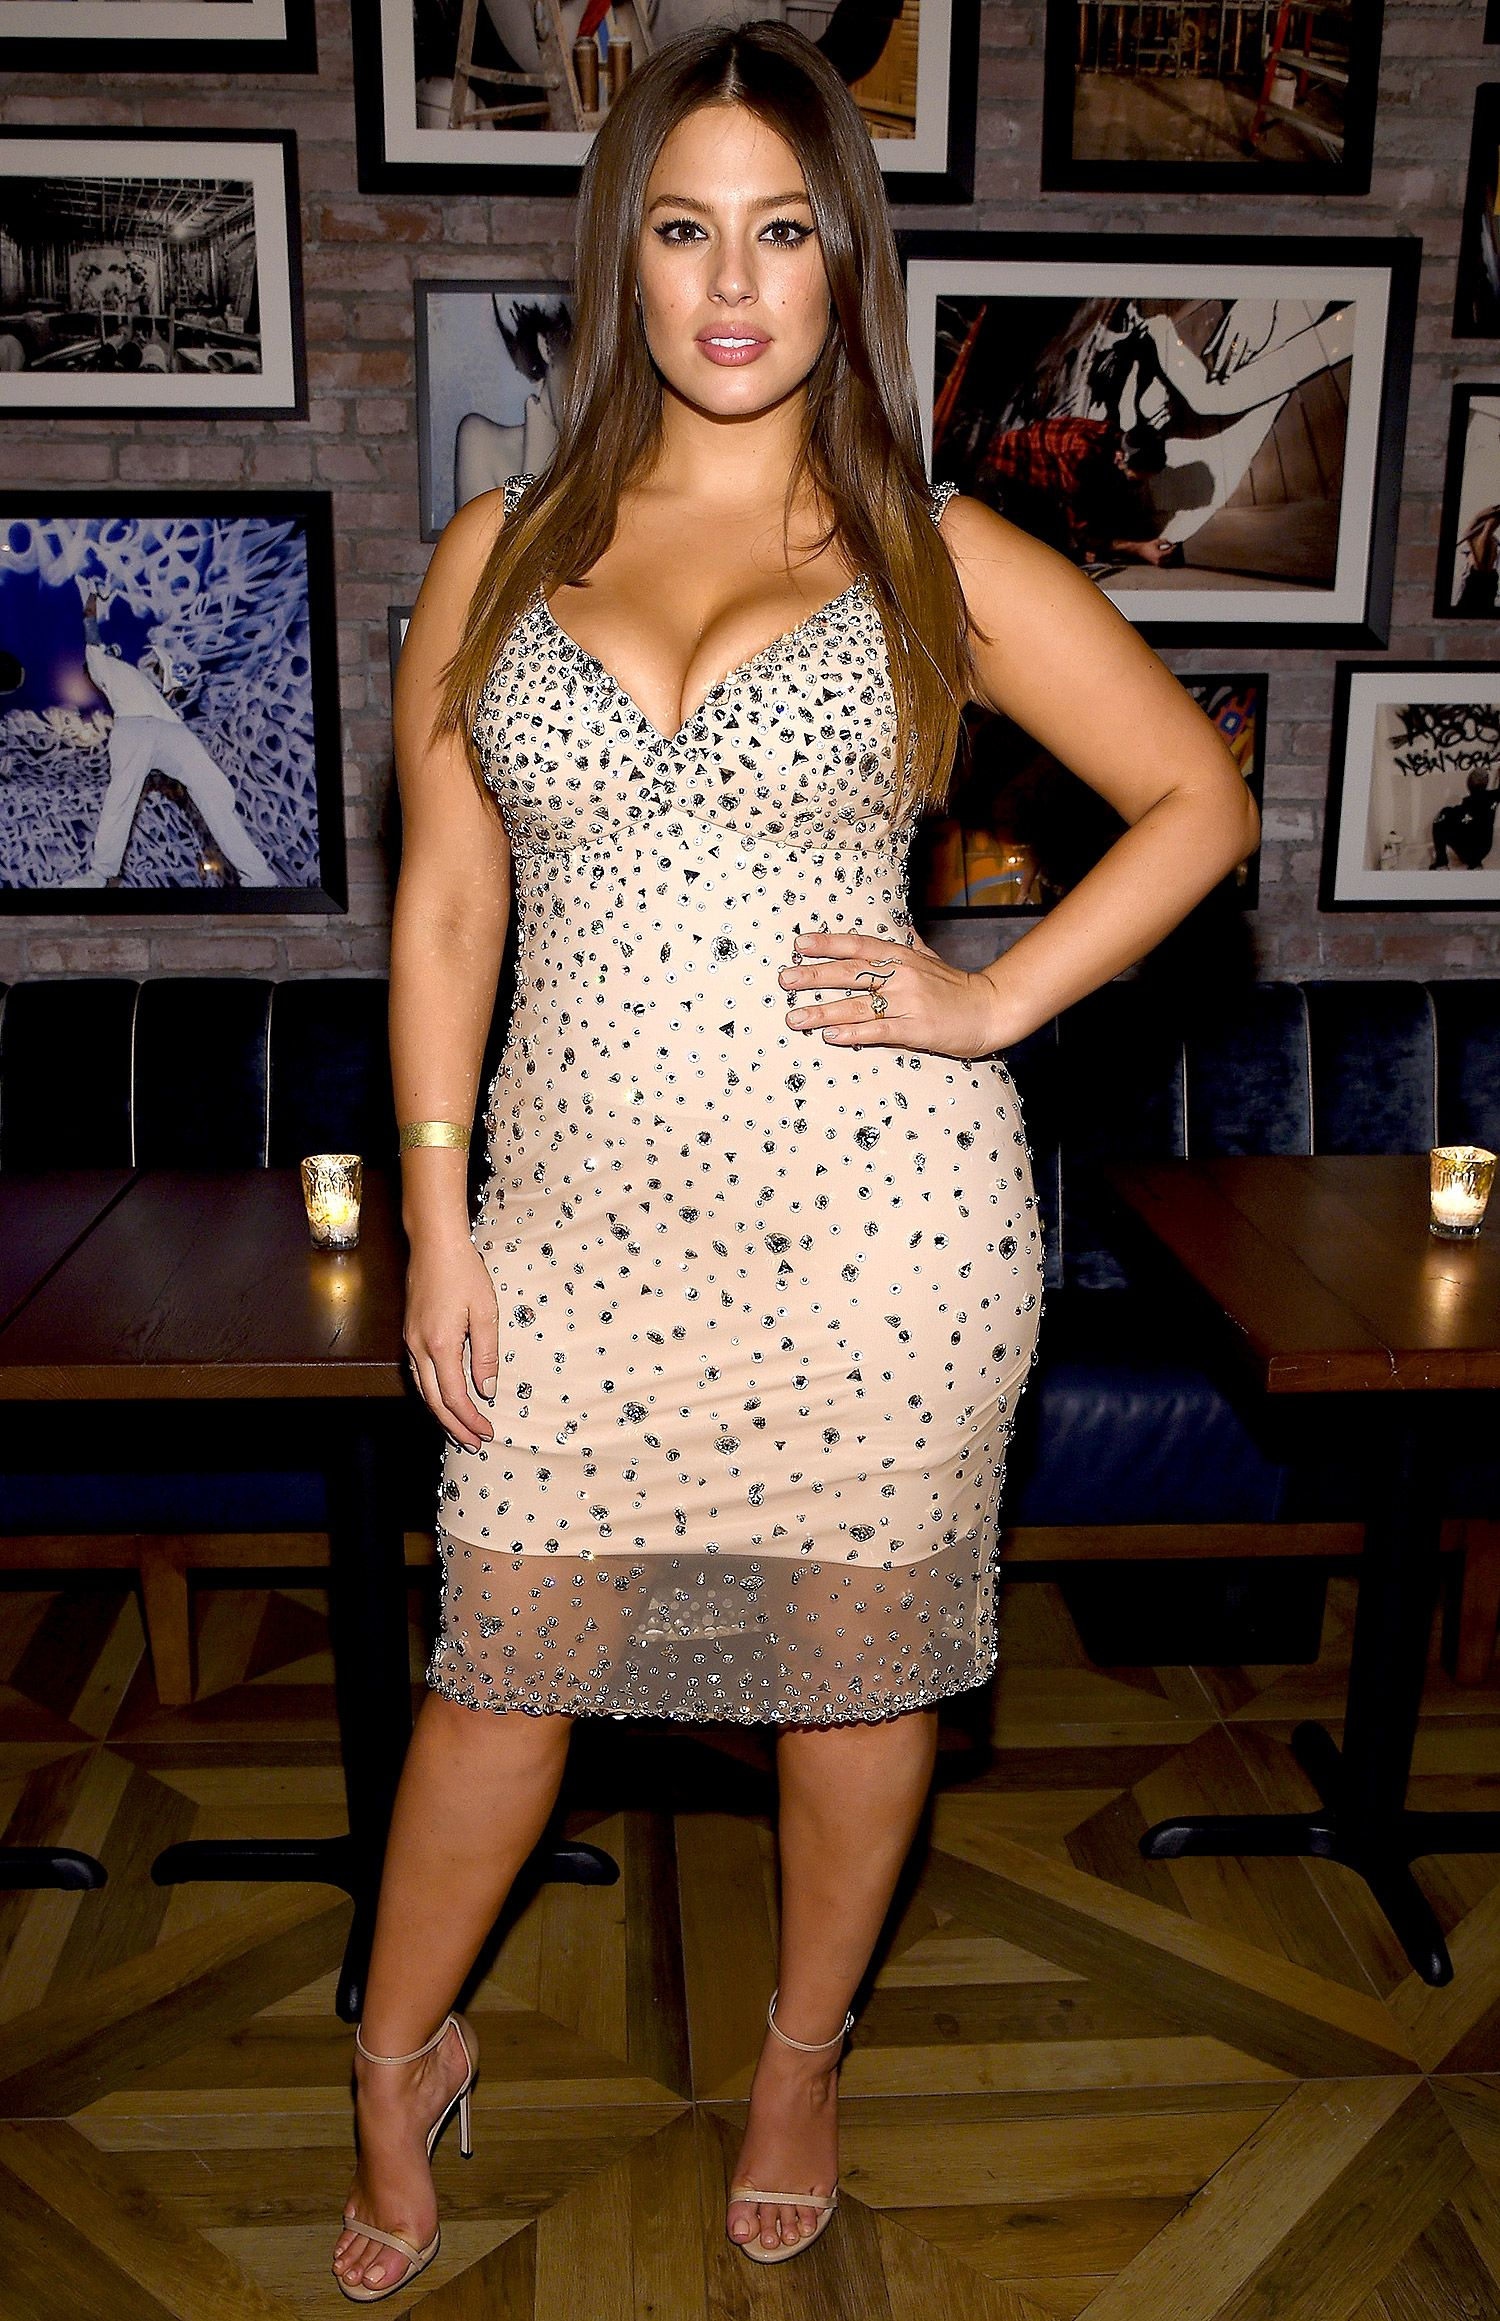 cd8fa594182fca ASHLEY GRAHAM in a nude body-hugging CD Greene cocktail dress with all-over  sparkle appliqué at a IMG Models event celebrating her Sports Illustrated  ...